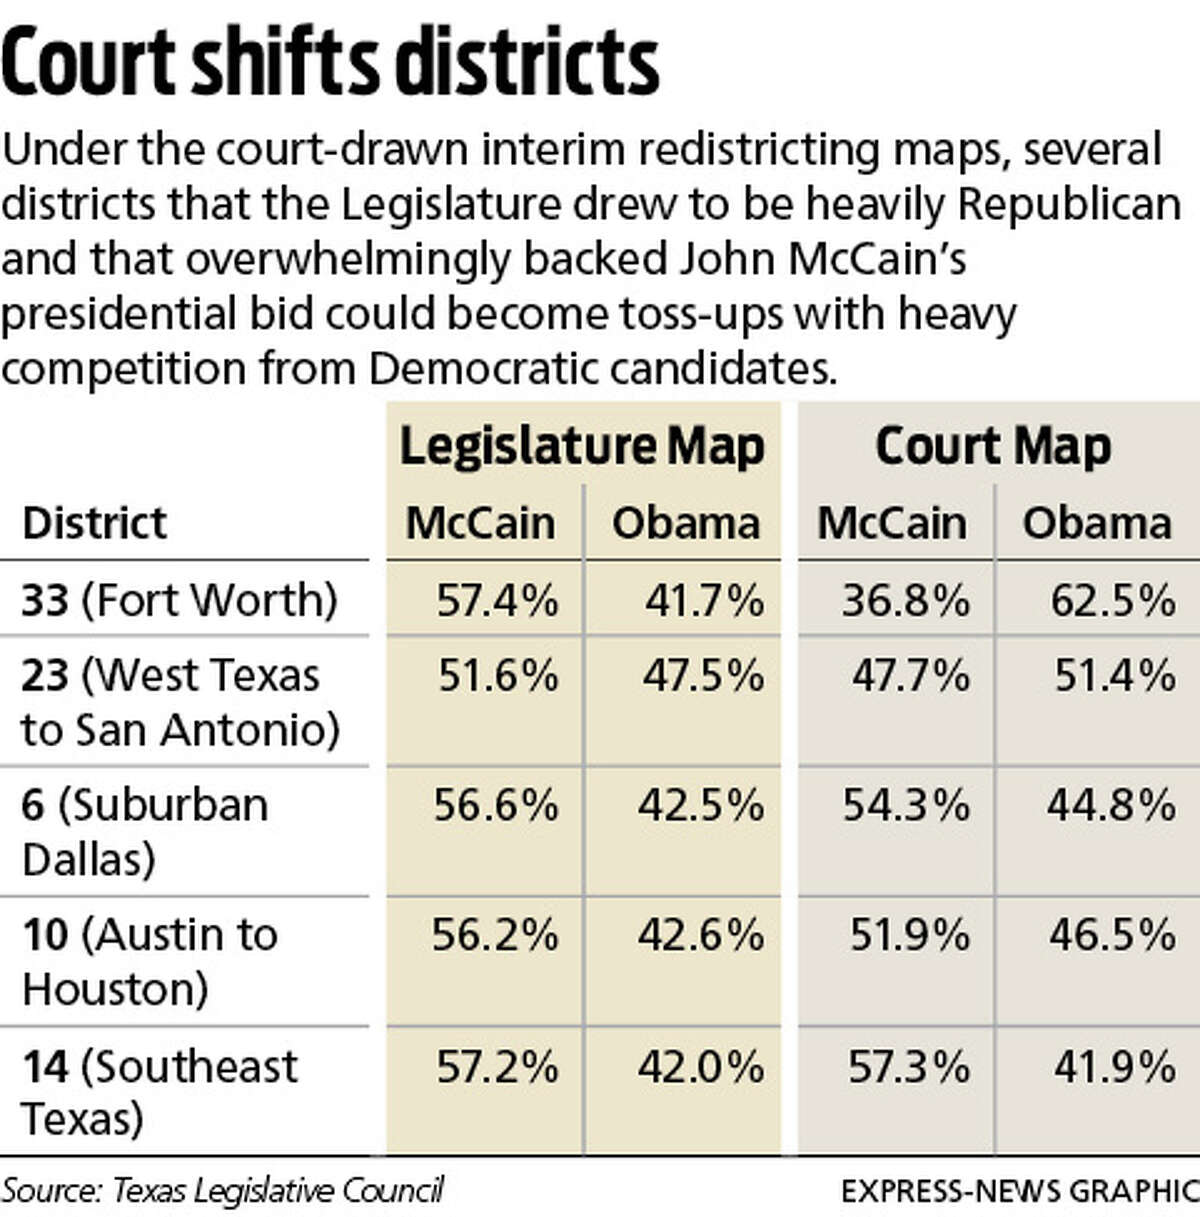 Court shifts districts Under the court-drawn interim redistricting maps, several districts that the Legislature drew to be heavily Republican and that overwhelmingly backed John McCain's presidential bid could become toss-ups with heavy competition from Democratic candidates.